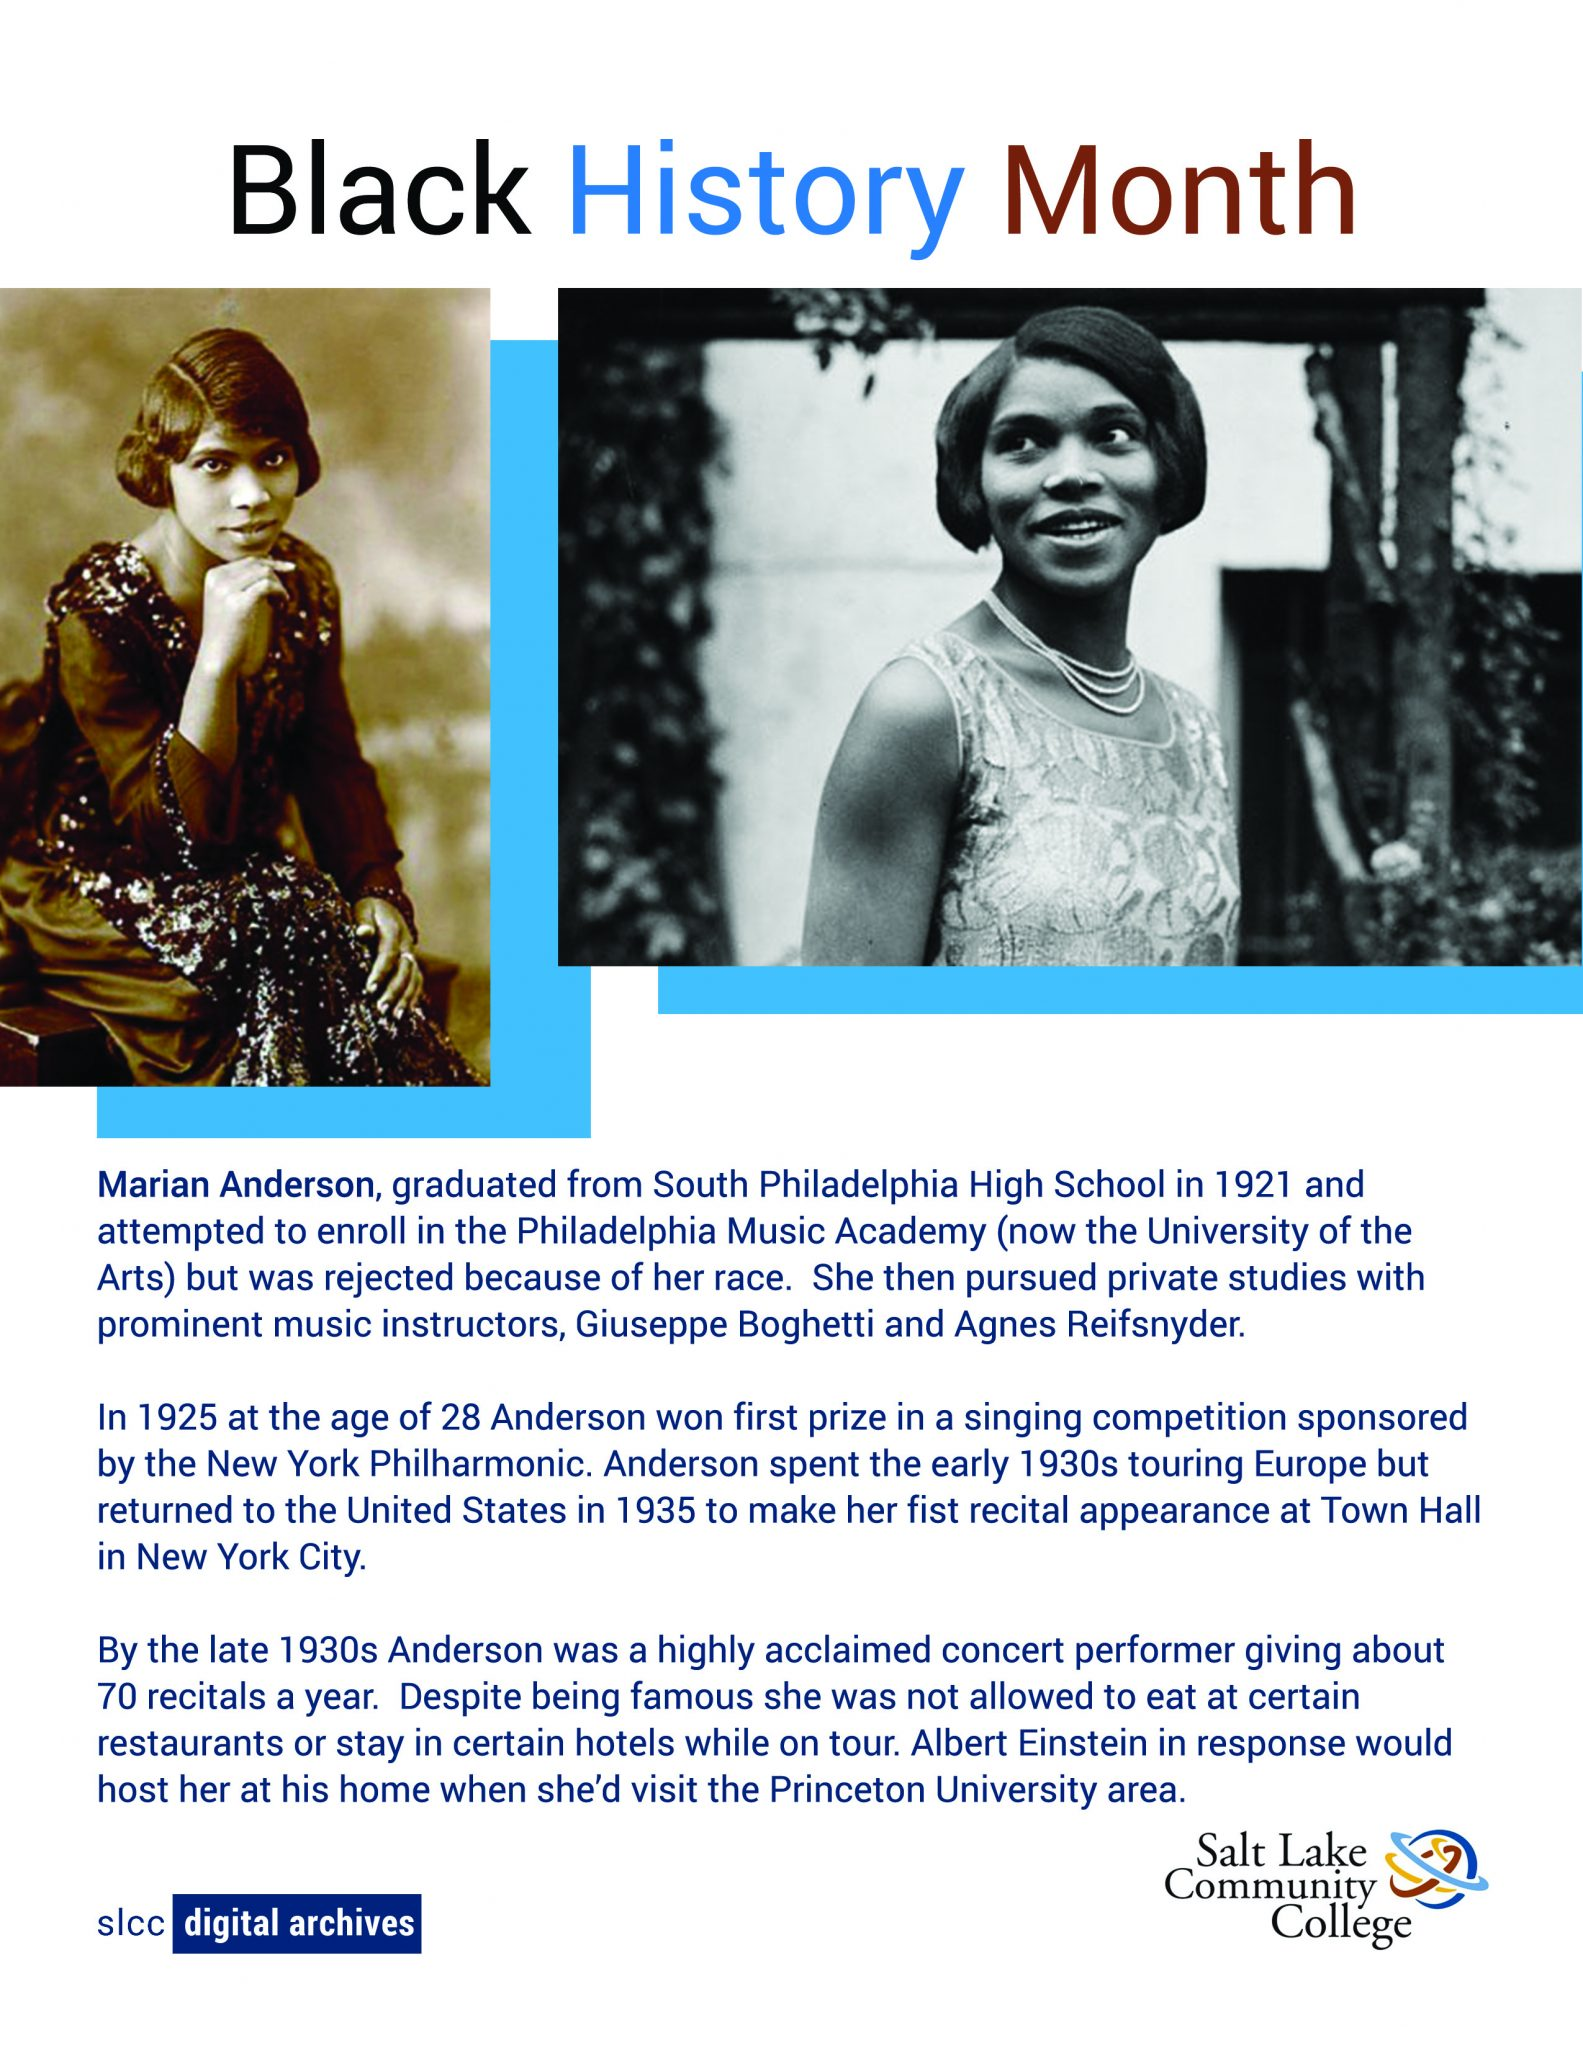 Two Photos of Marian Anderson